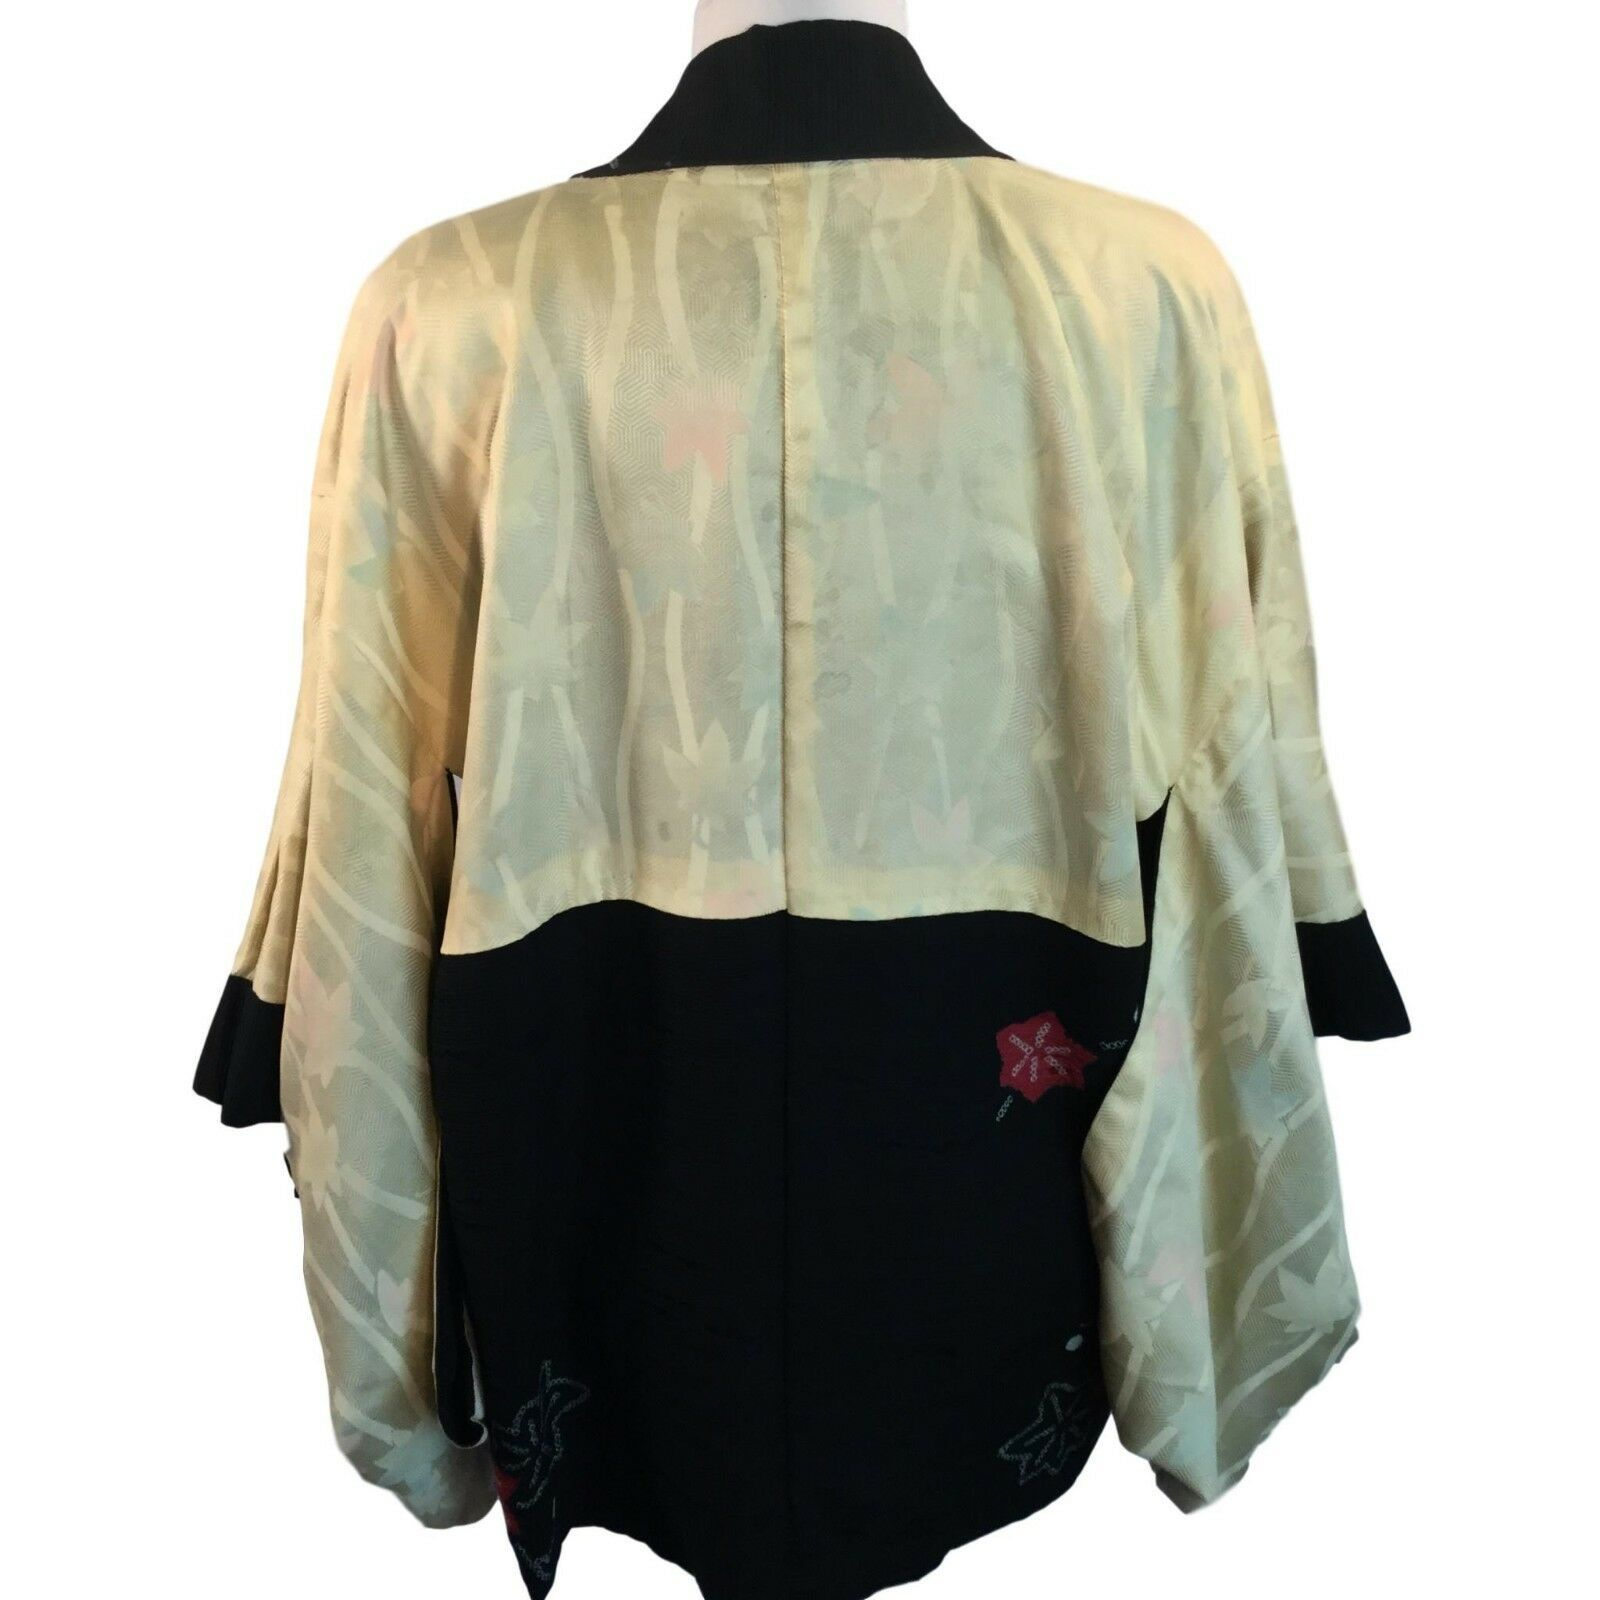 Vtg Kimono Sleeve Jacket Black with Red Flower Textured Rayon Lined One Size